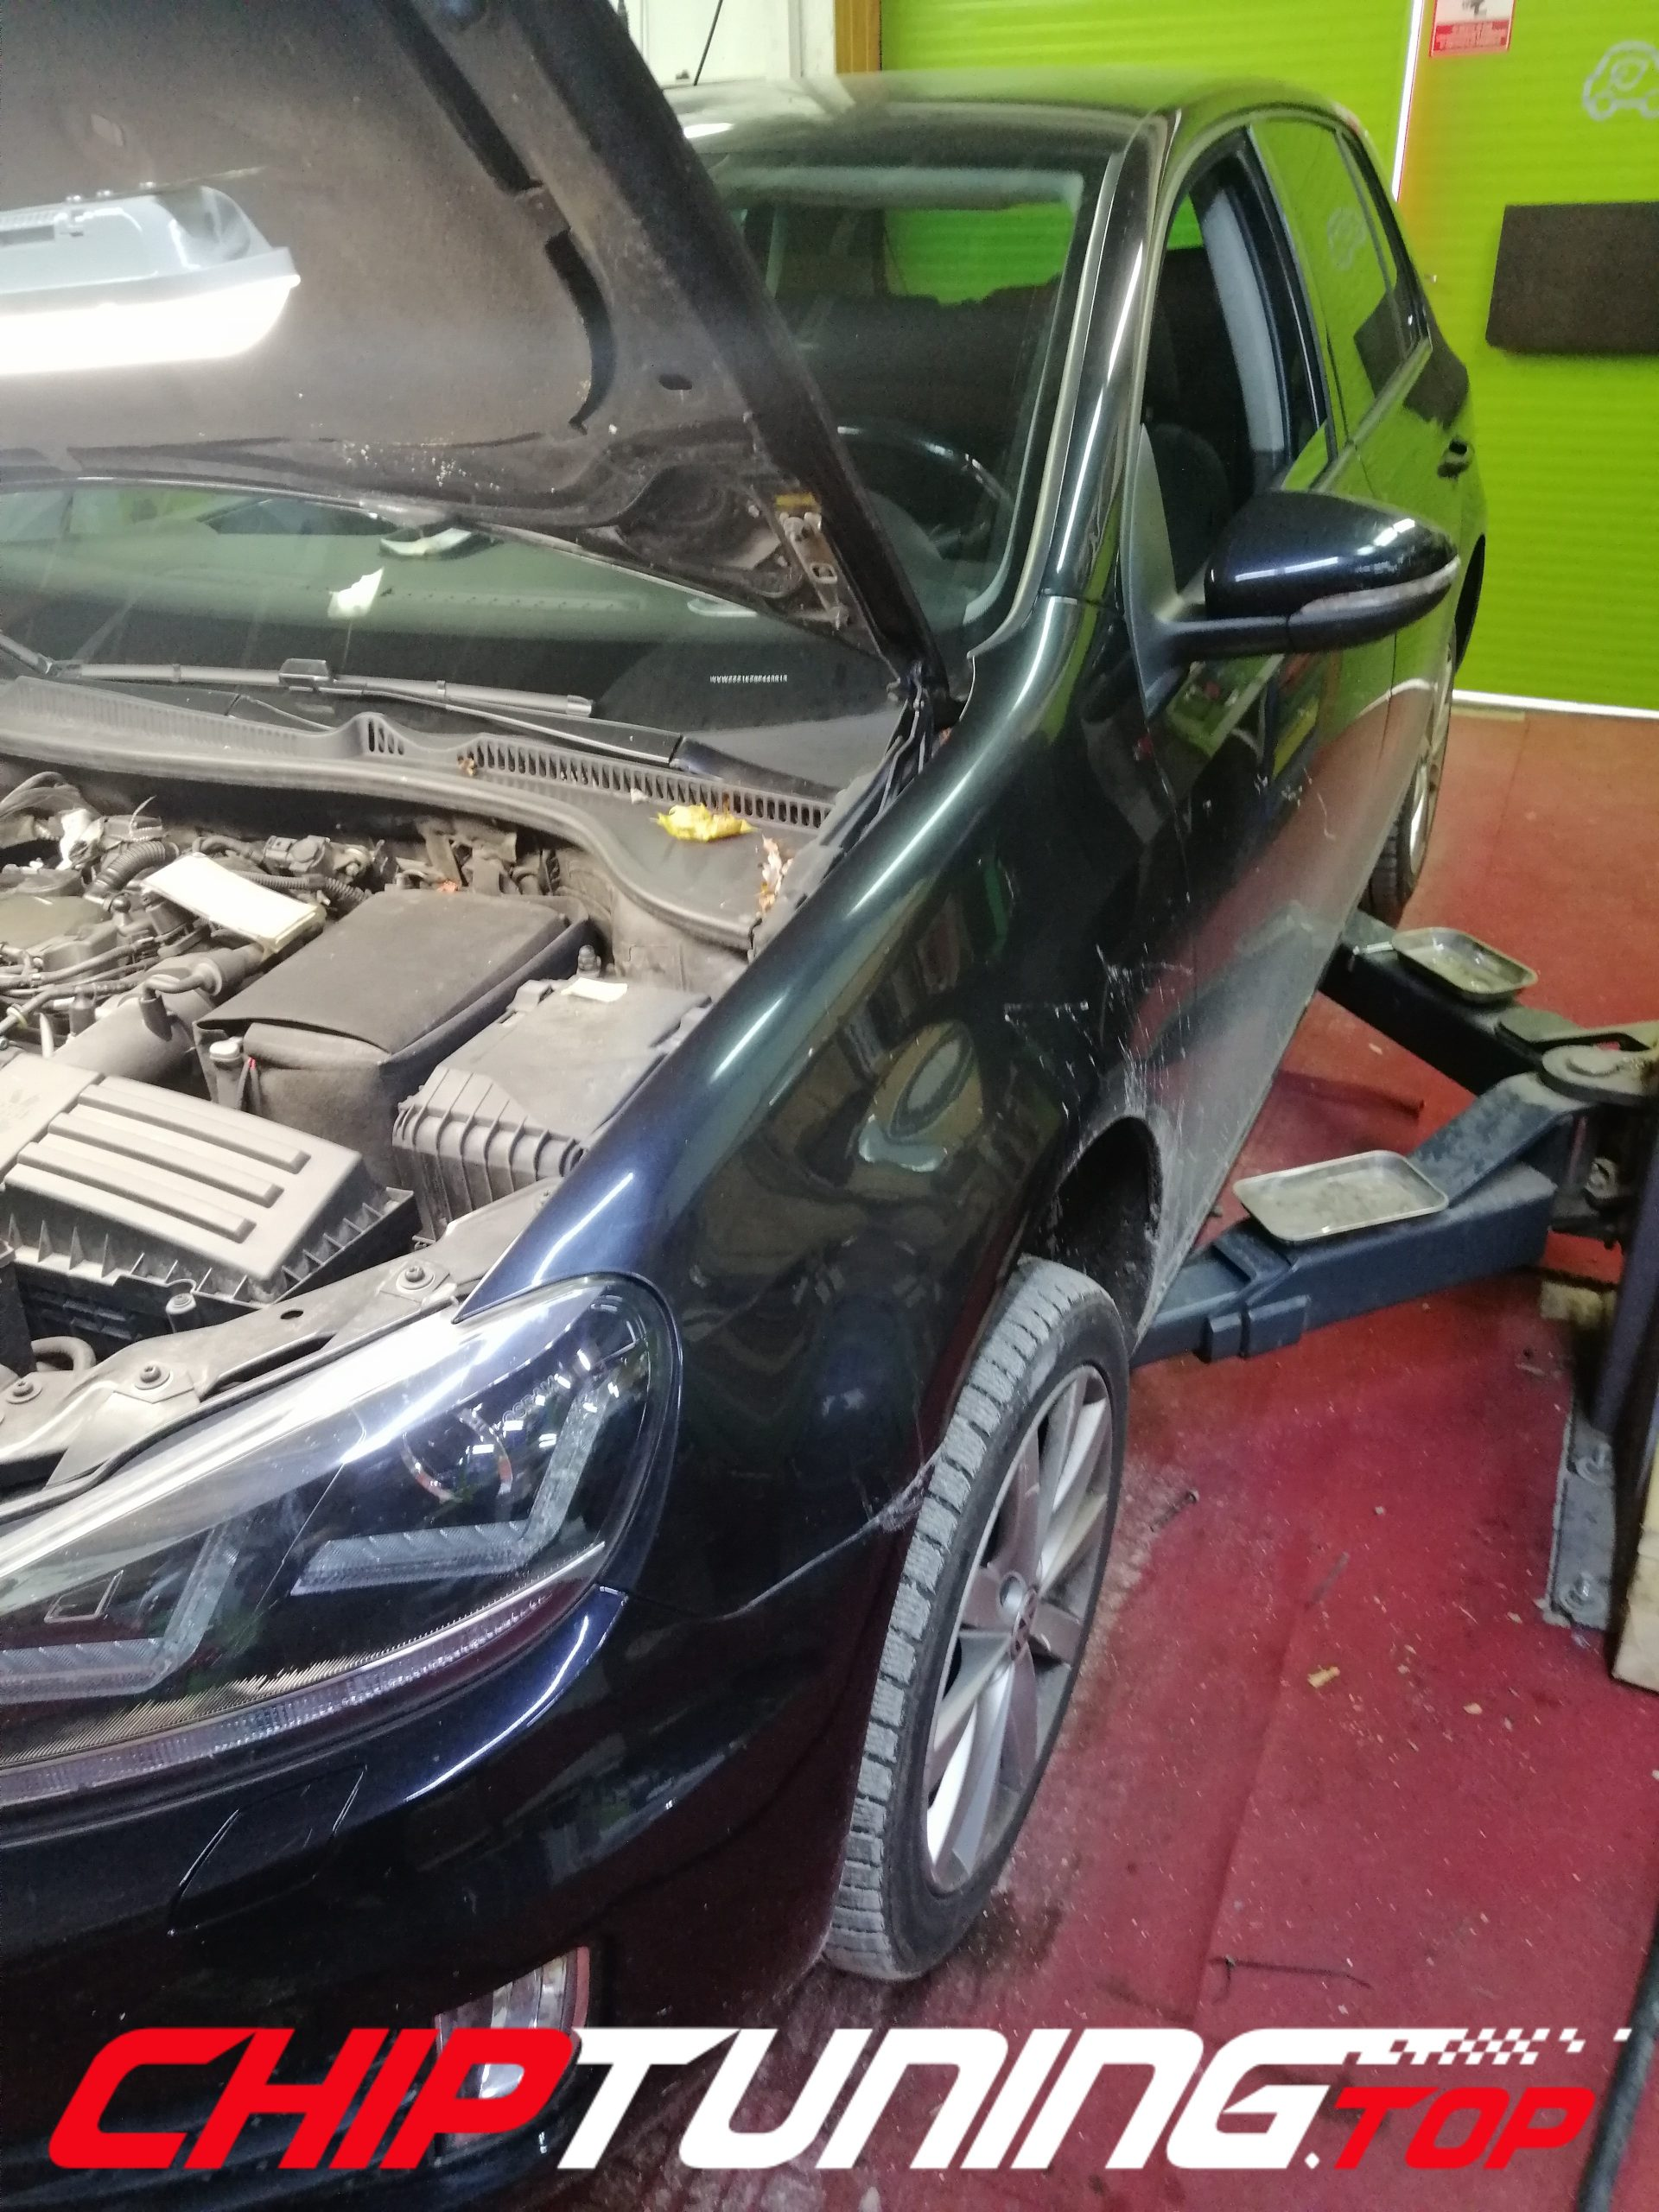 CHIP TUNING VW GOLF 6 2.0 TDI 140KM